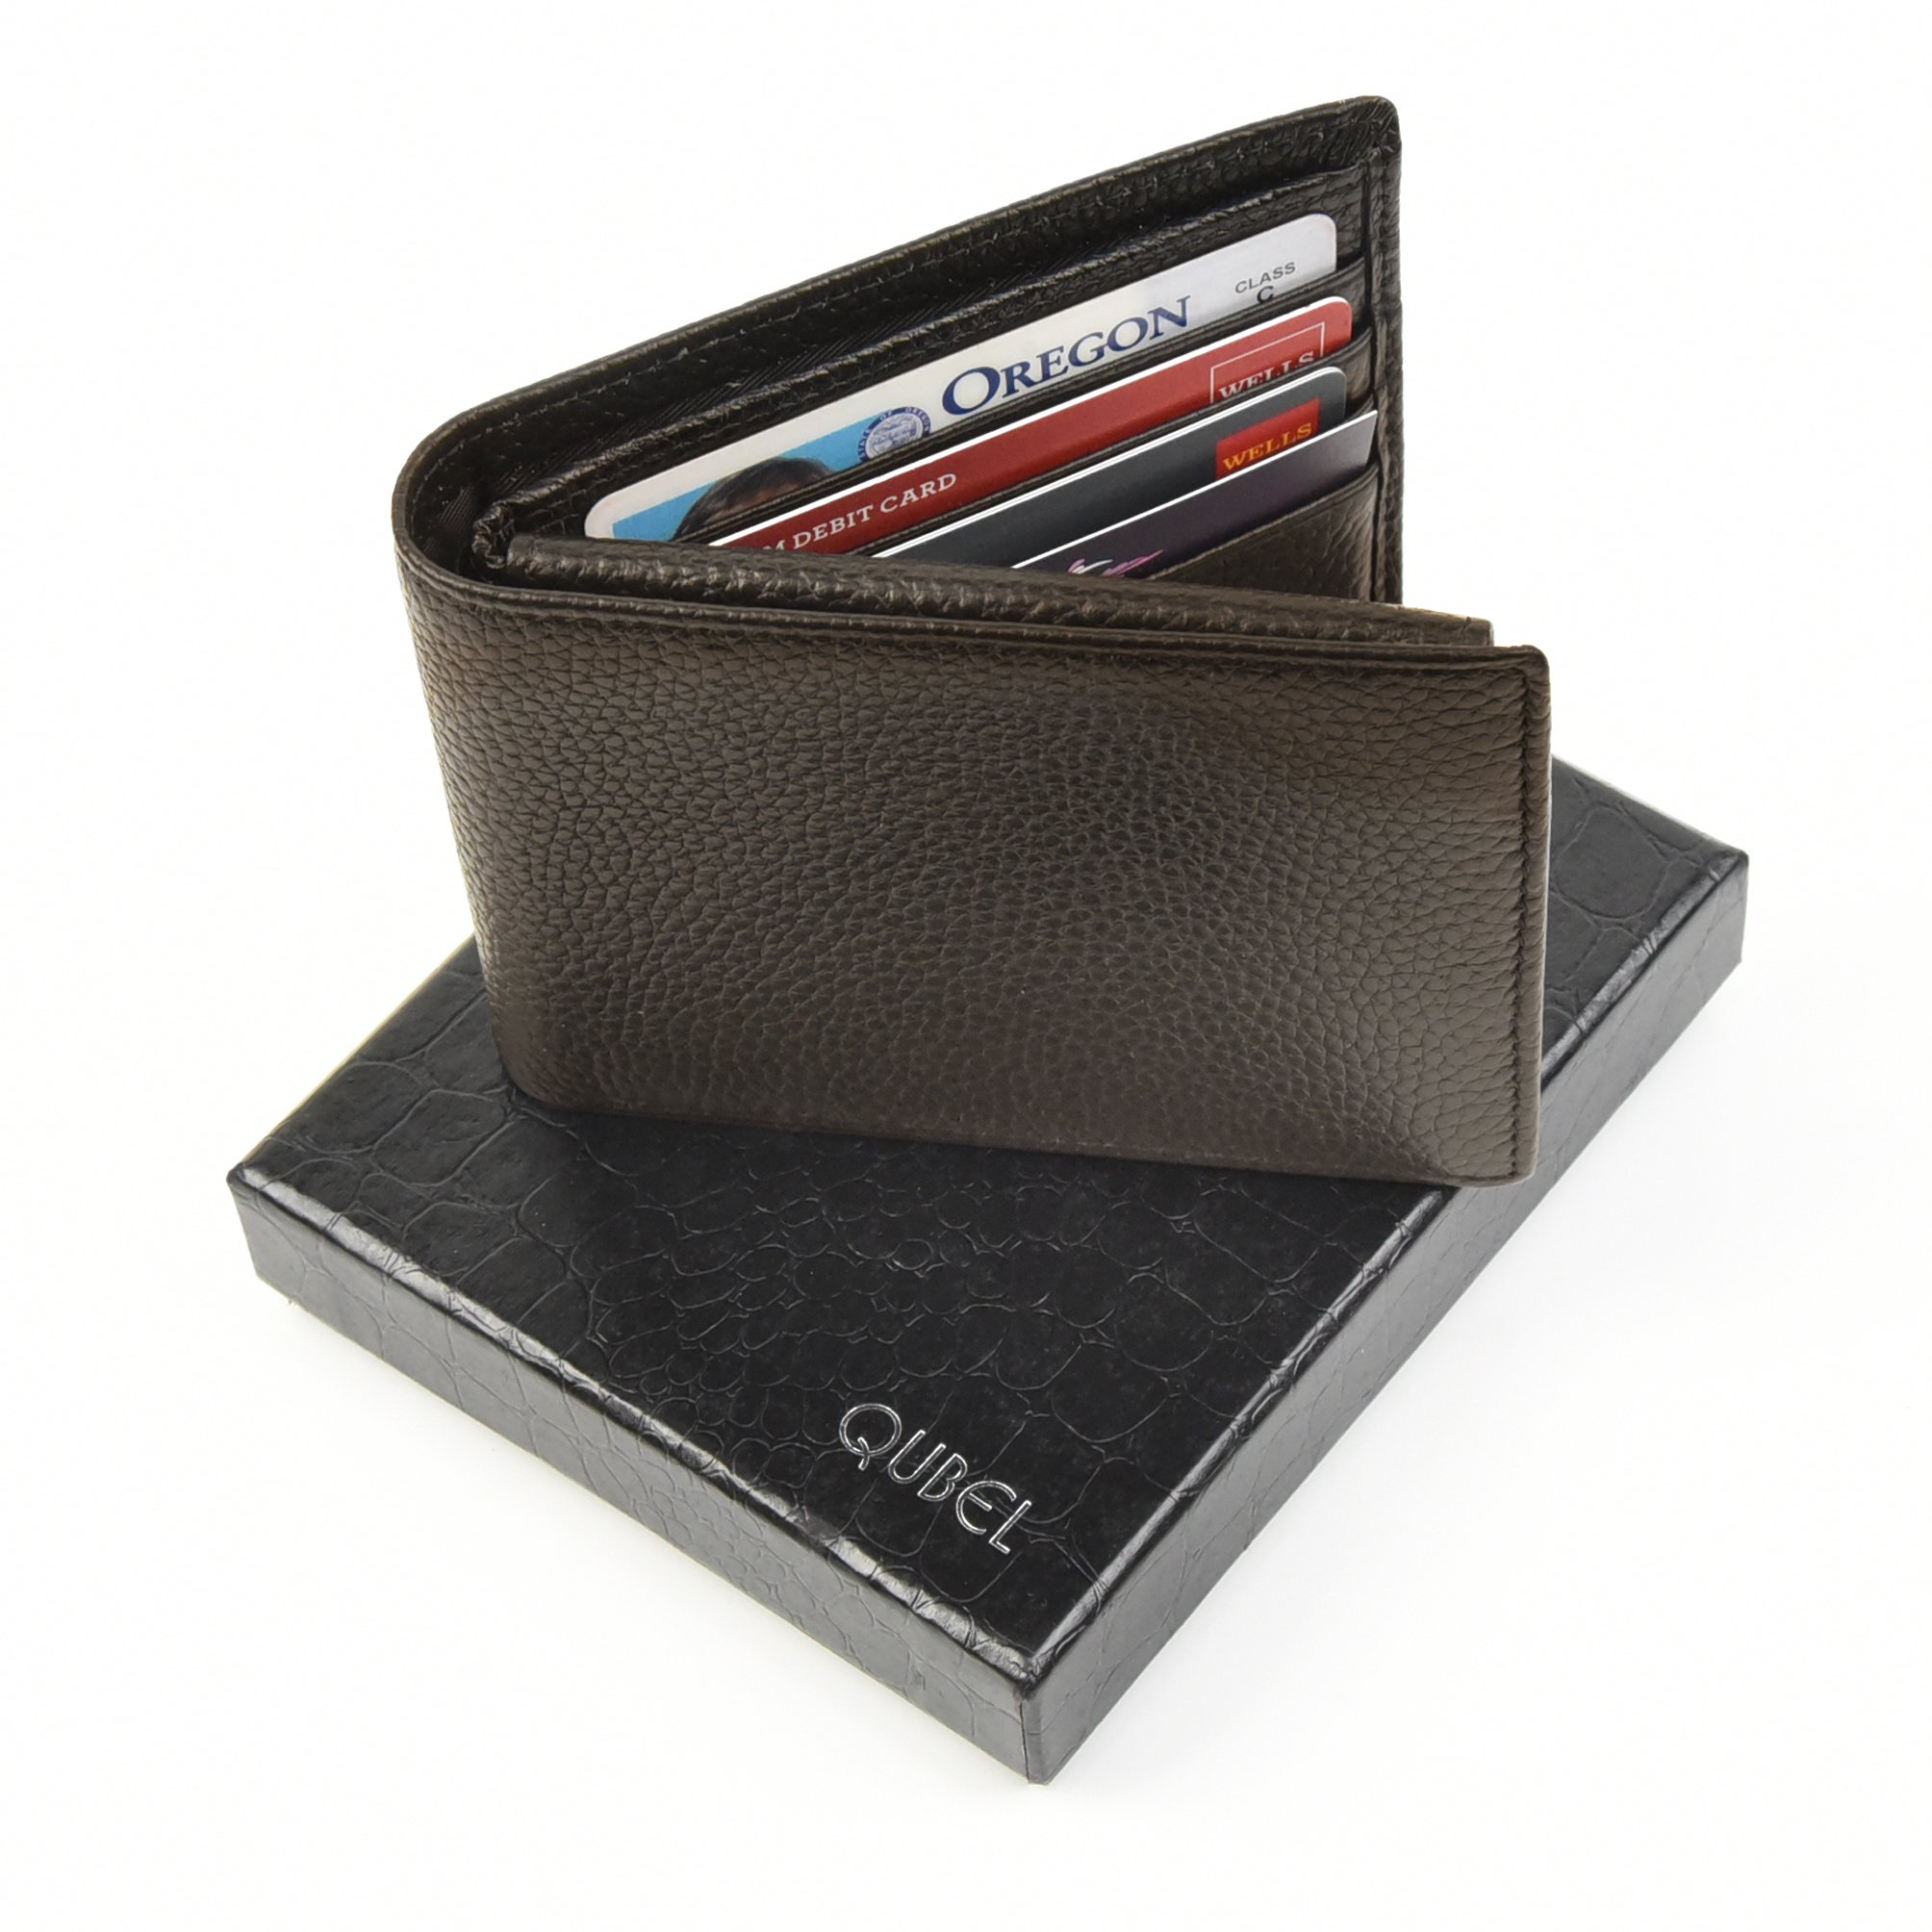 RFID Blocking Slim Bifold Genuine Leather Wallet for Men - Credit Card Protector by Qubel (Image #2)